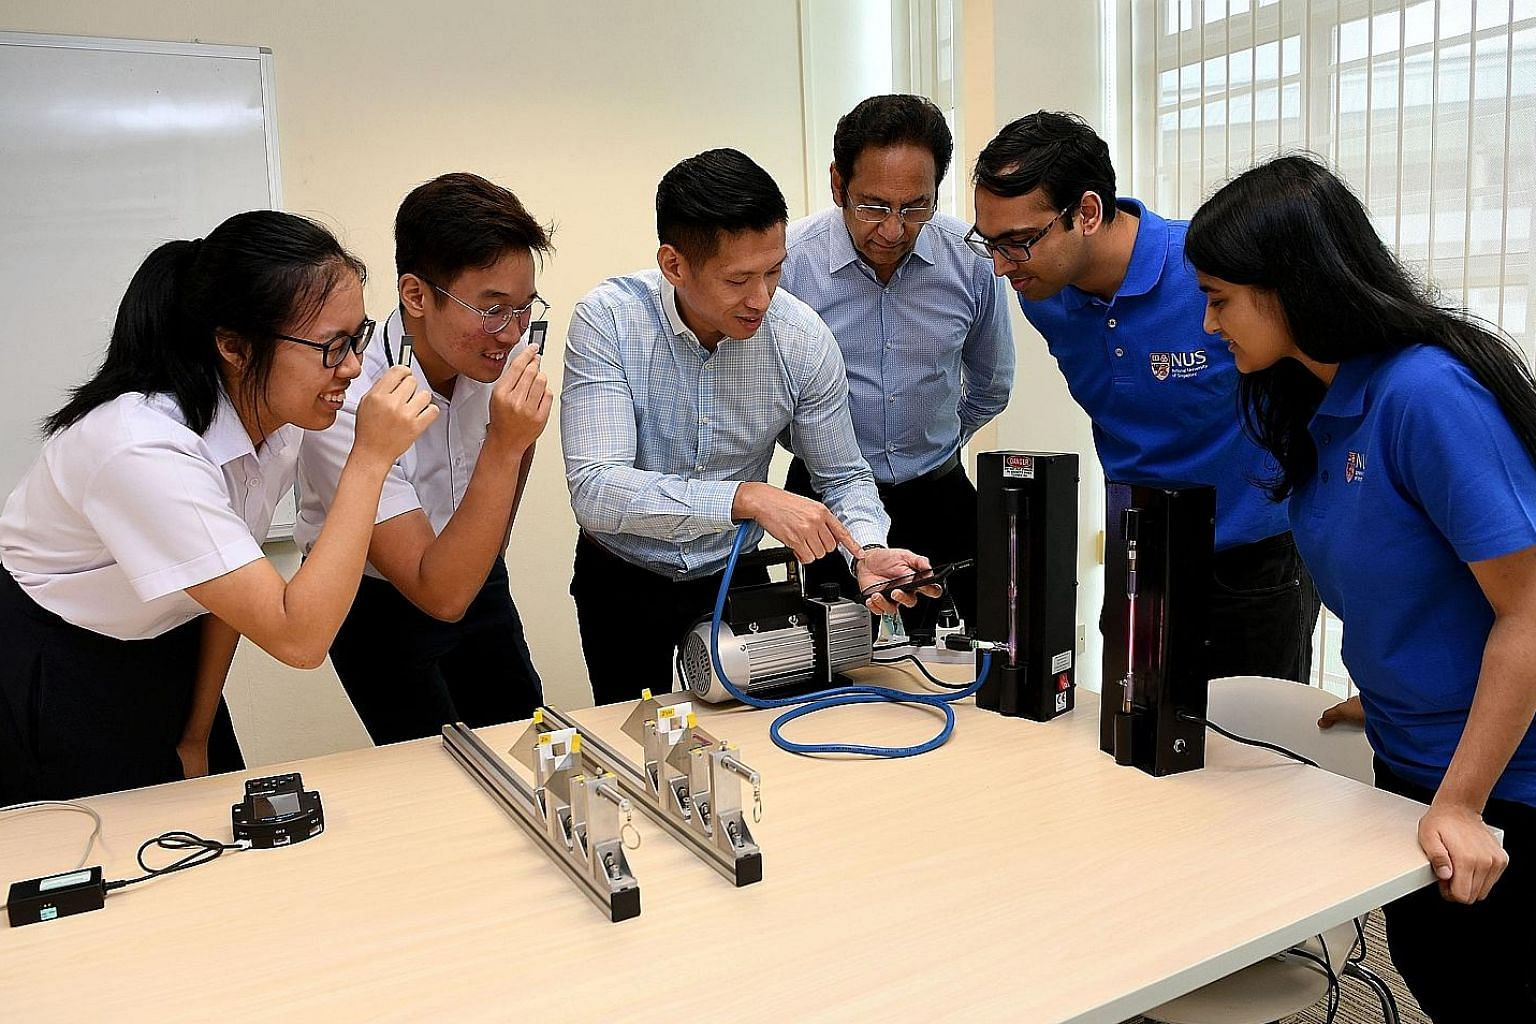 Jurong Pioneer Junior College's head of department for curricular development and innovation Edwin Lim using a mobile phone spectrometer, which measures light wavelengths. With him (from far left) are students Narahda Lim and Haw Jin Yu; Professor Th